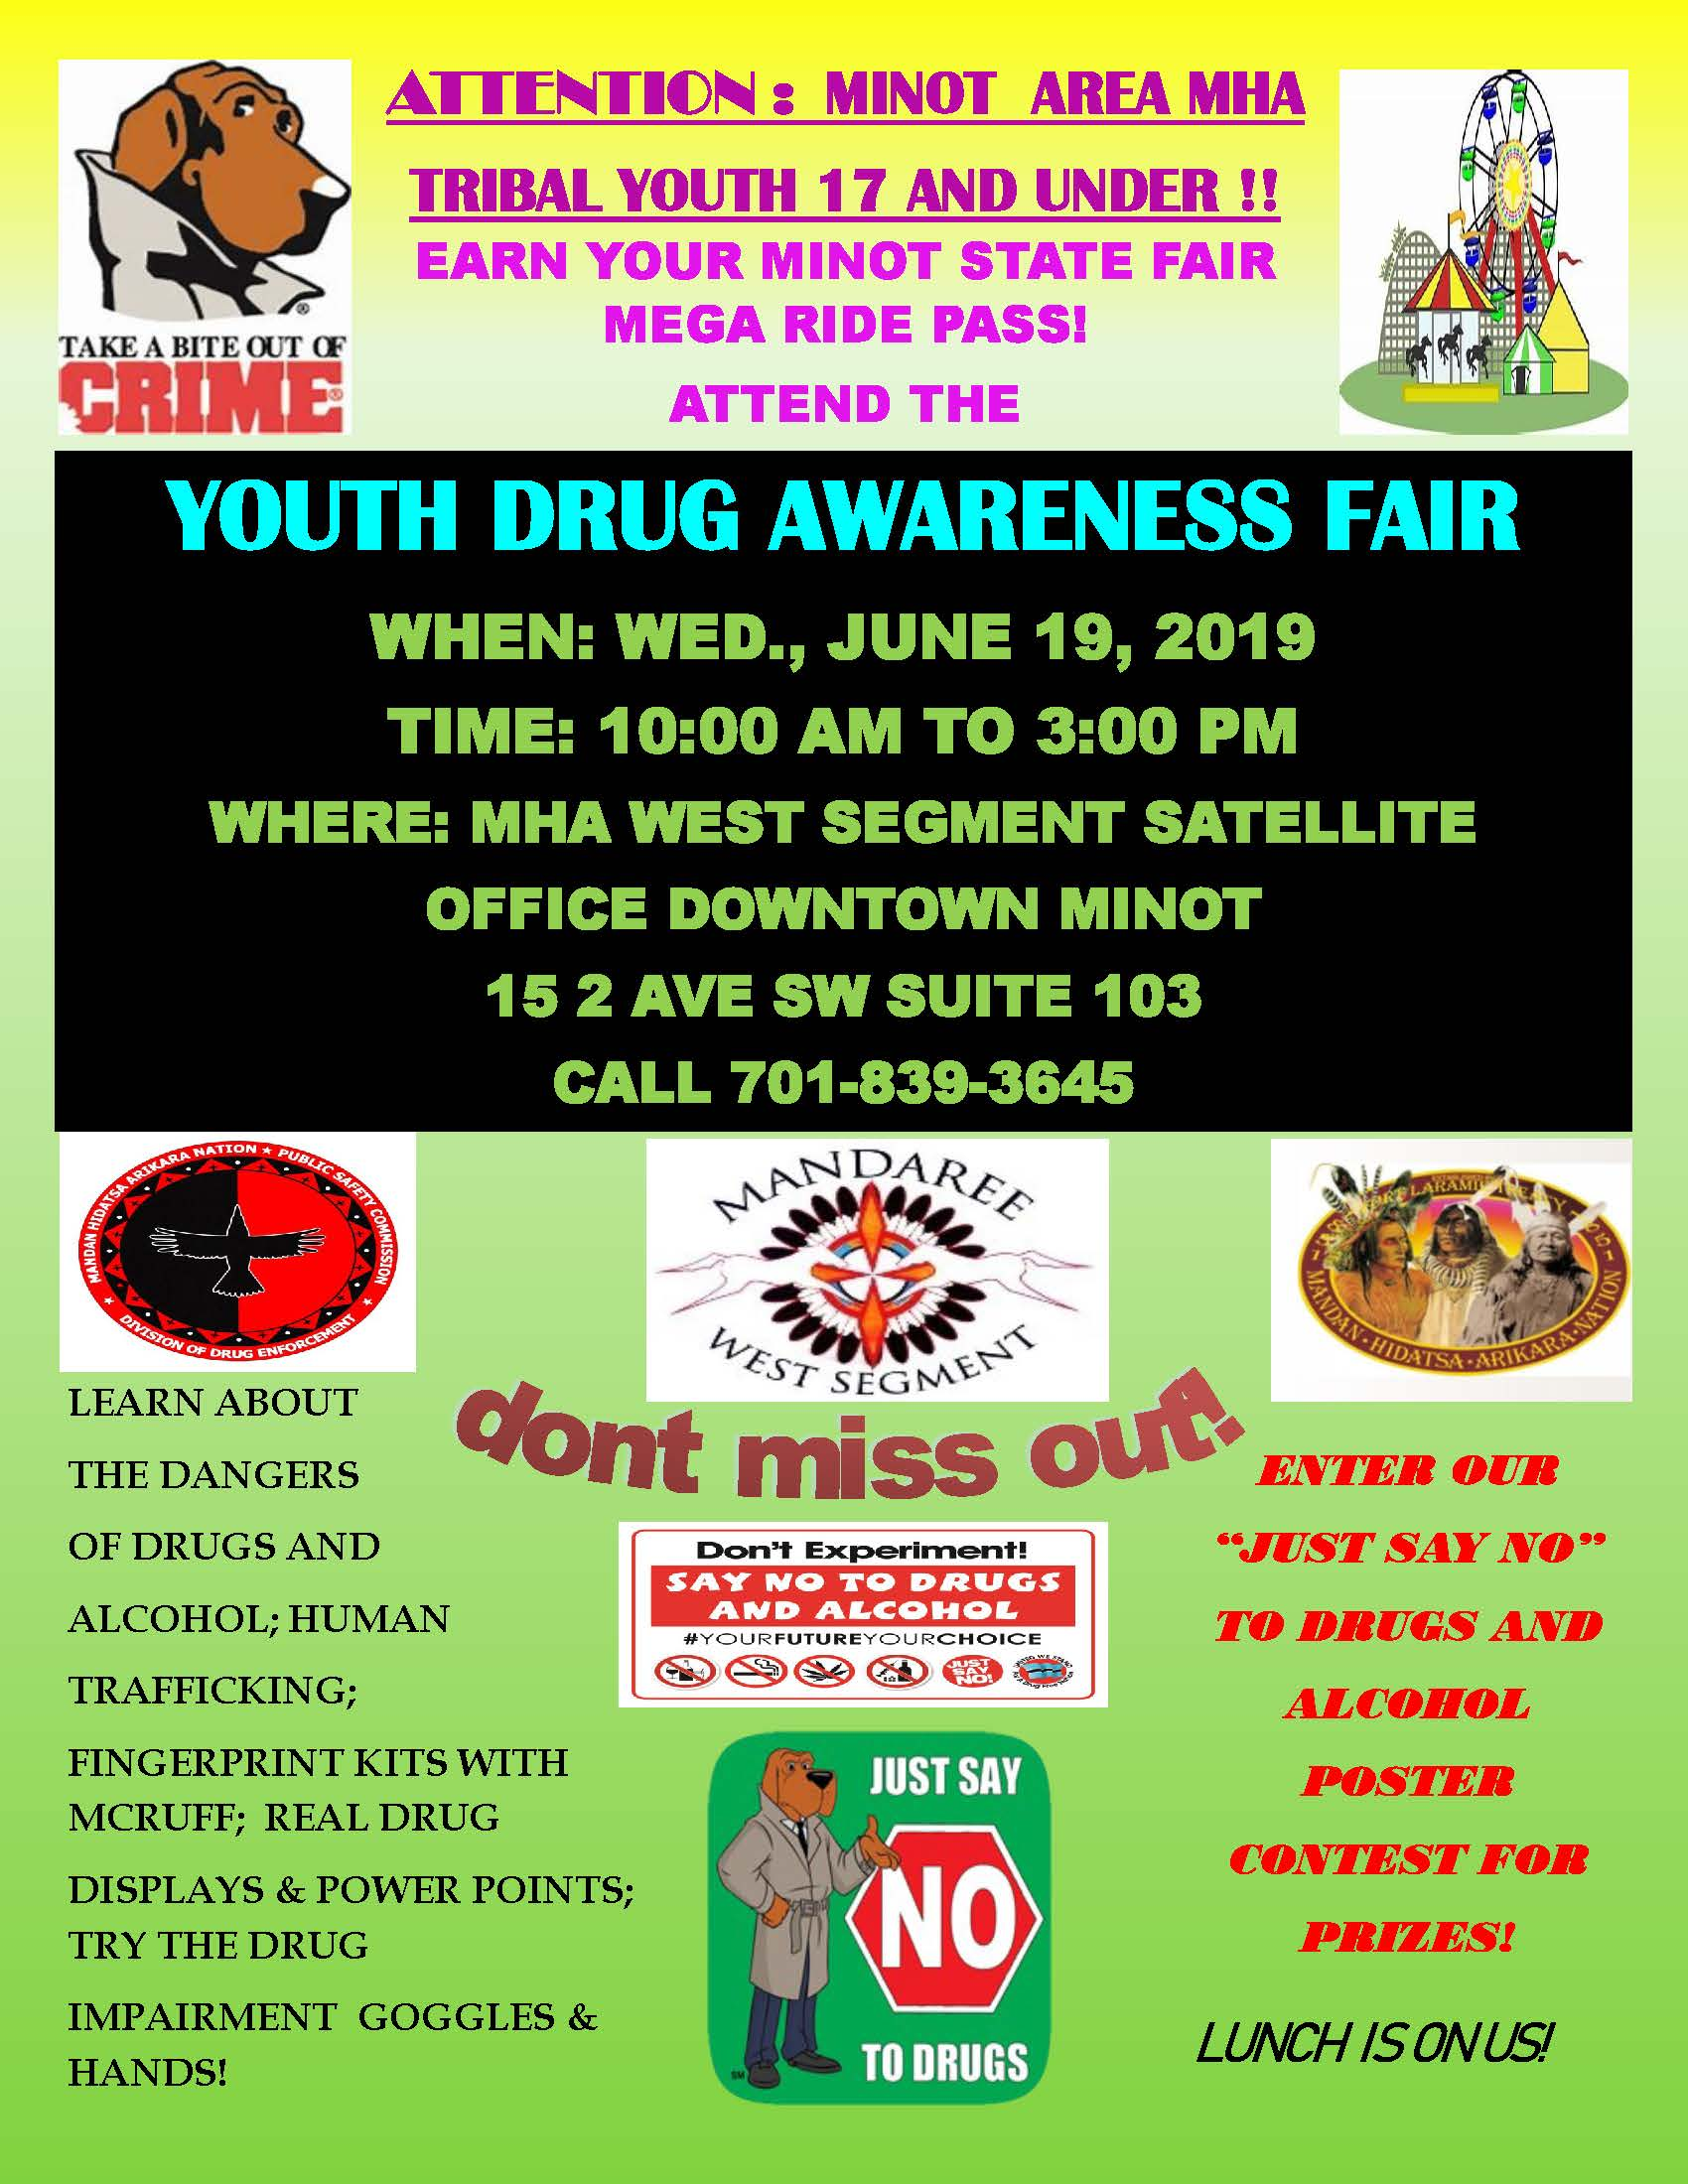 DRUG AWARENESS FAIR FLYER FINAL EDITED.jpg